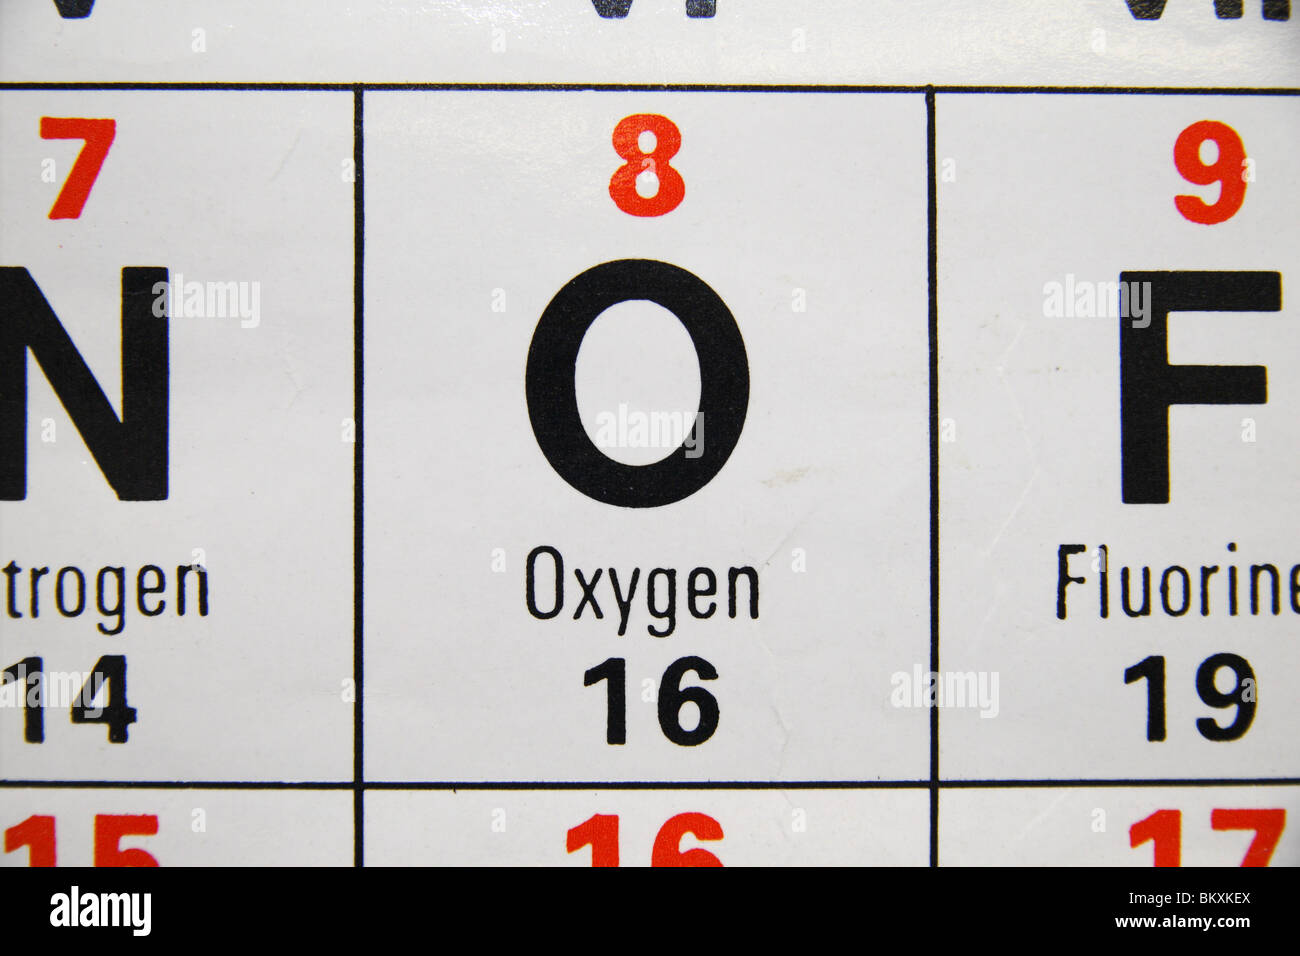 Periodic table elements oxygen stock photos periodic table close up view of a standard uk high school periodic table focusing on the flammable gamestrikefo Gallery